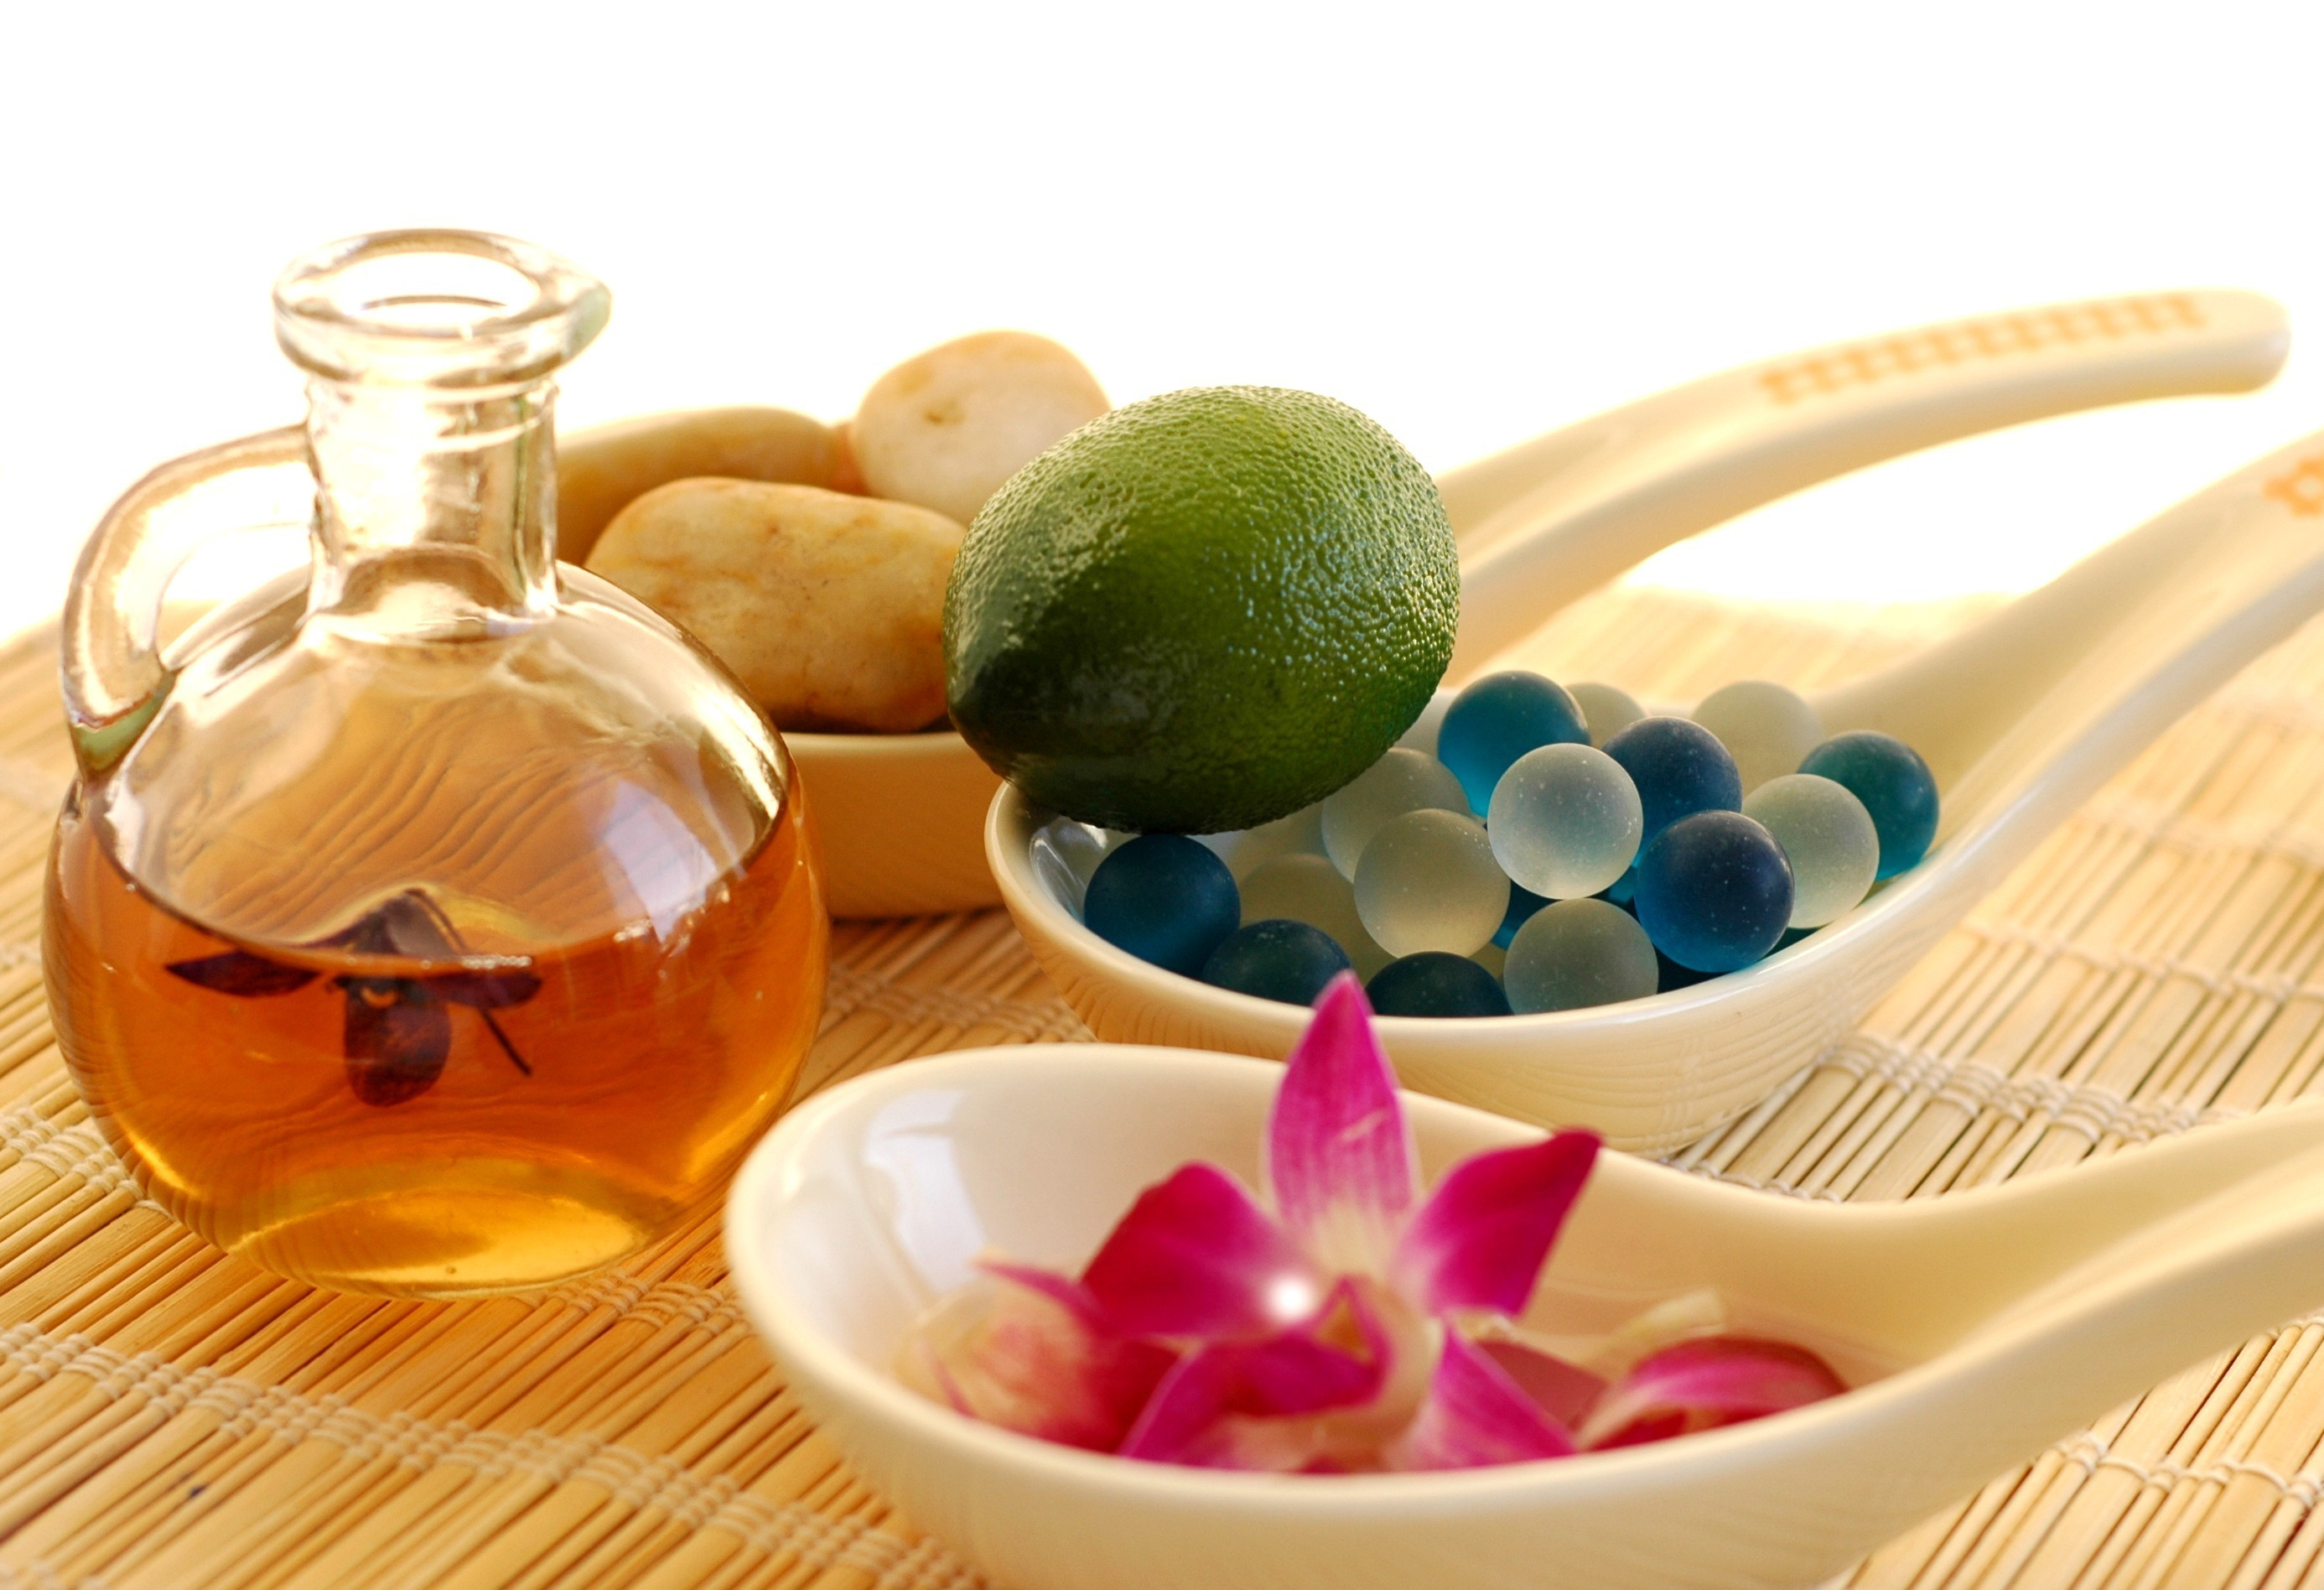 aromatherapy 1 Aromatherapy for alzheimer's improves the quality of life for people with dementia certain essential oils improve mood, memory and even cognition.